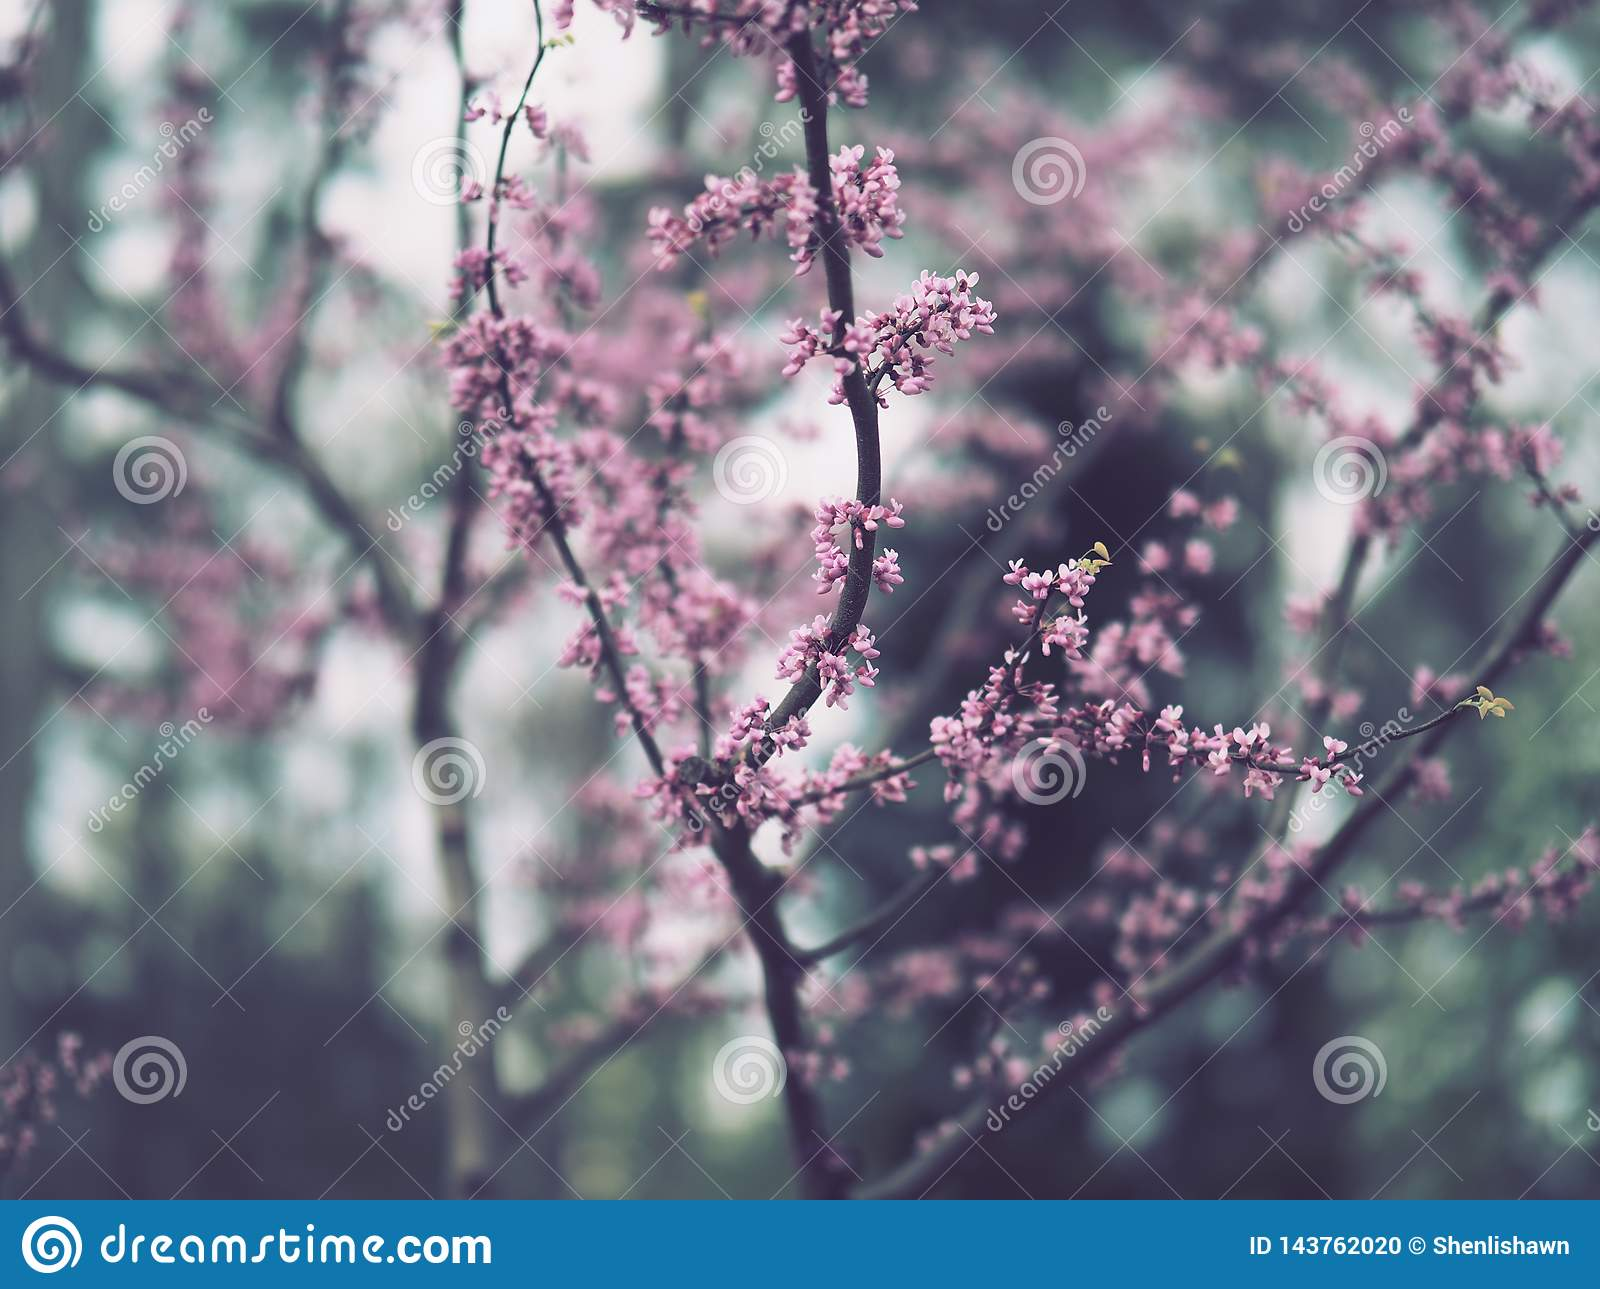 Branches with miniature purple flowers